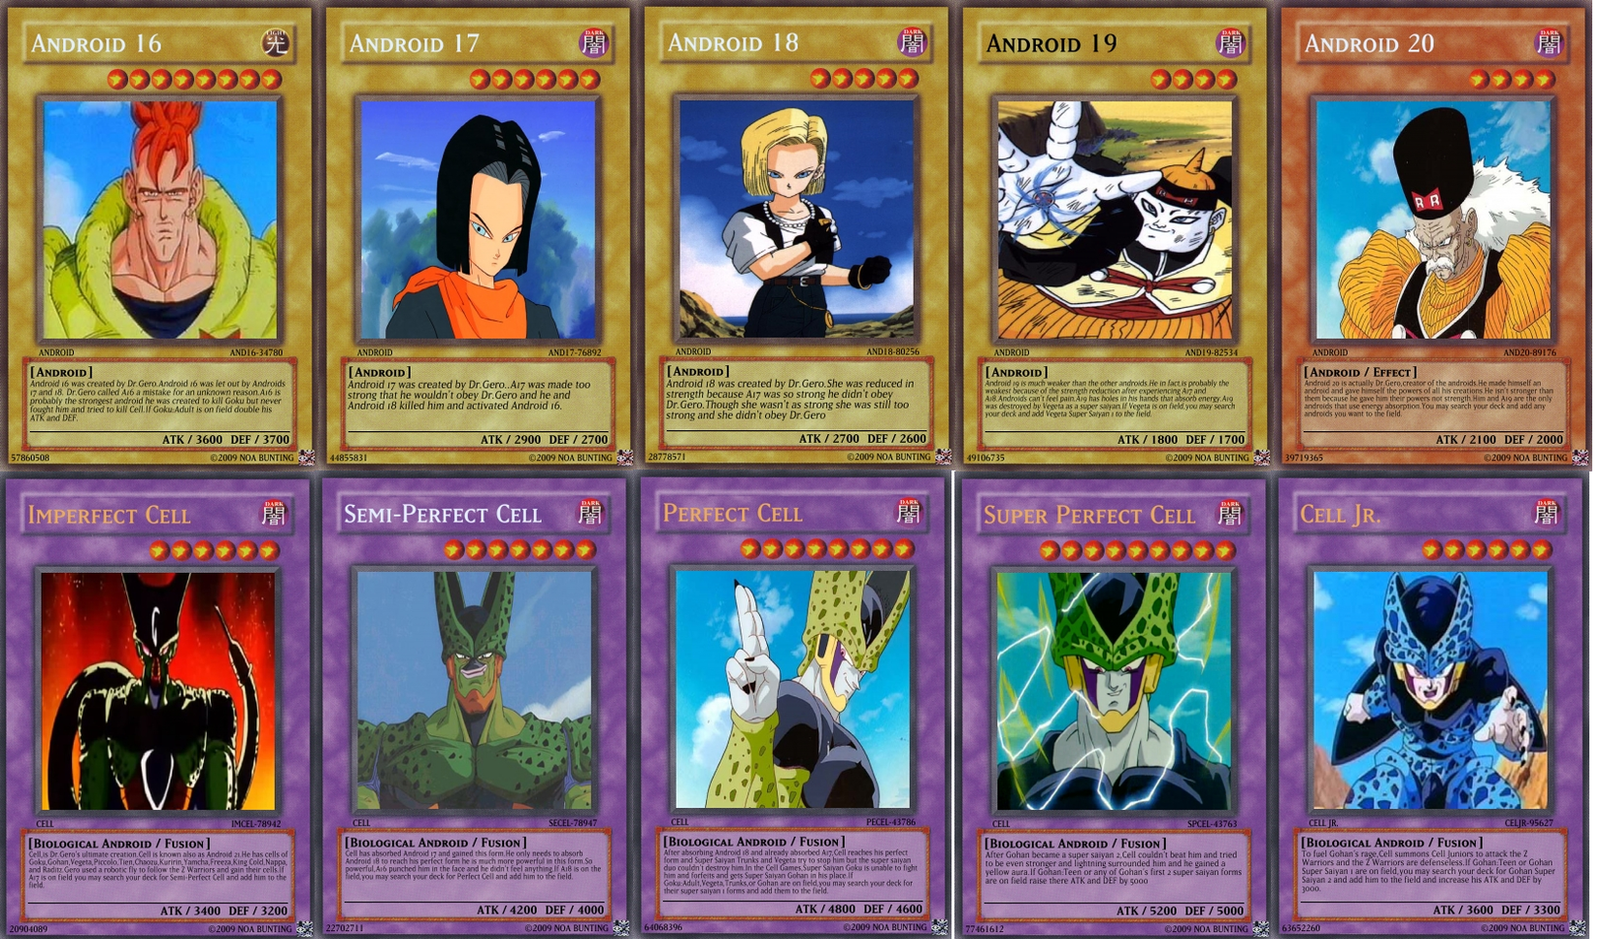 Android Yu-Gi-Oh Cards By Dbzsketcher On DeviantArt